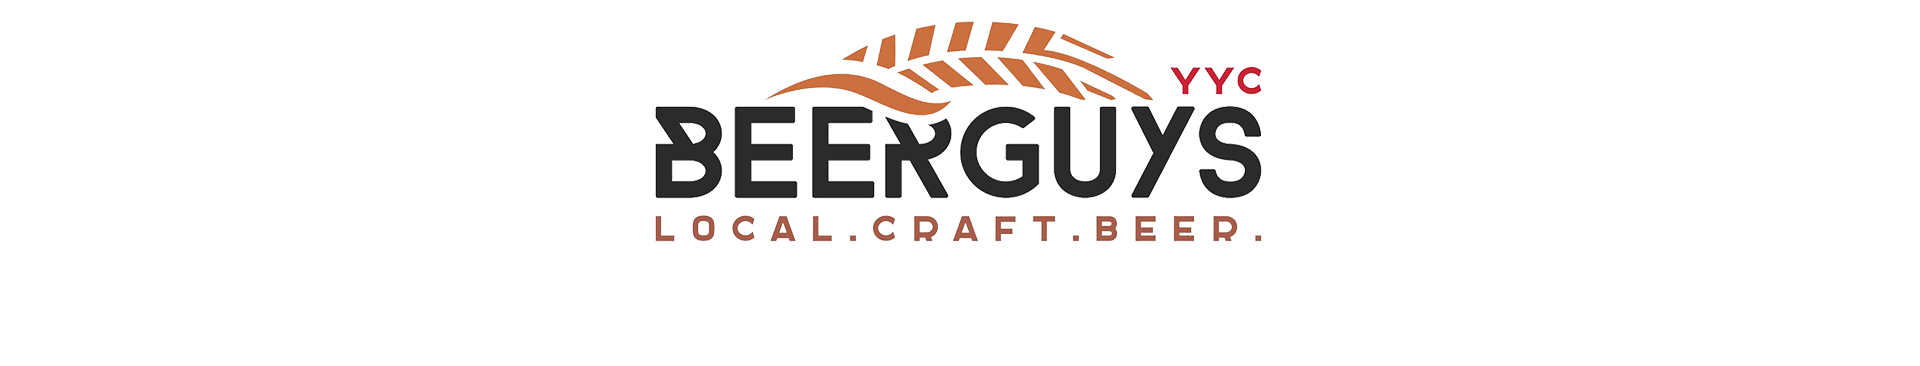 YYC Beer Week,BeerGuysYYC